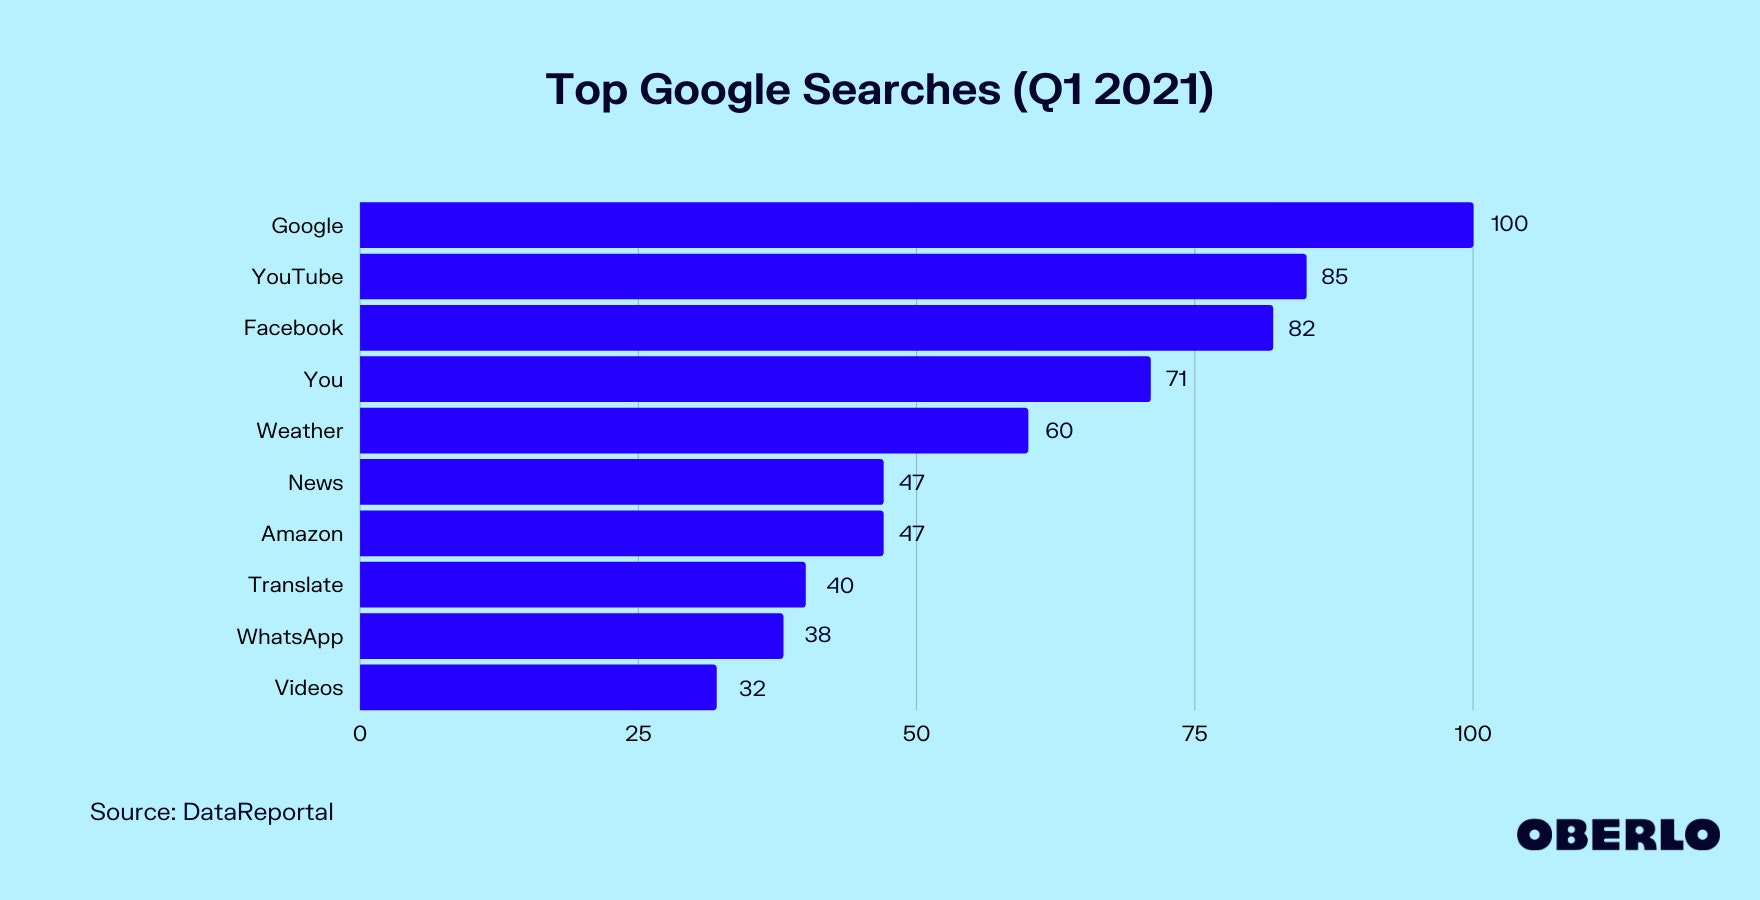 Top Google Searches (Q1 2021) Graphic